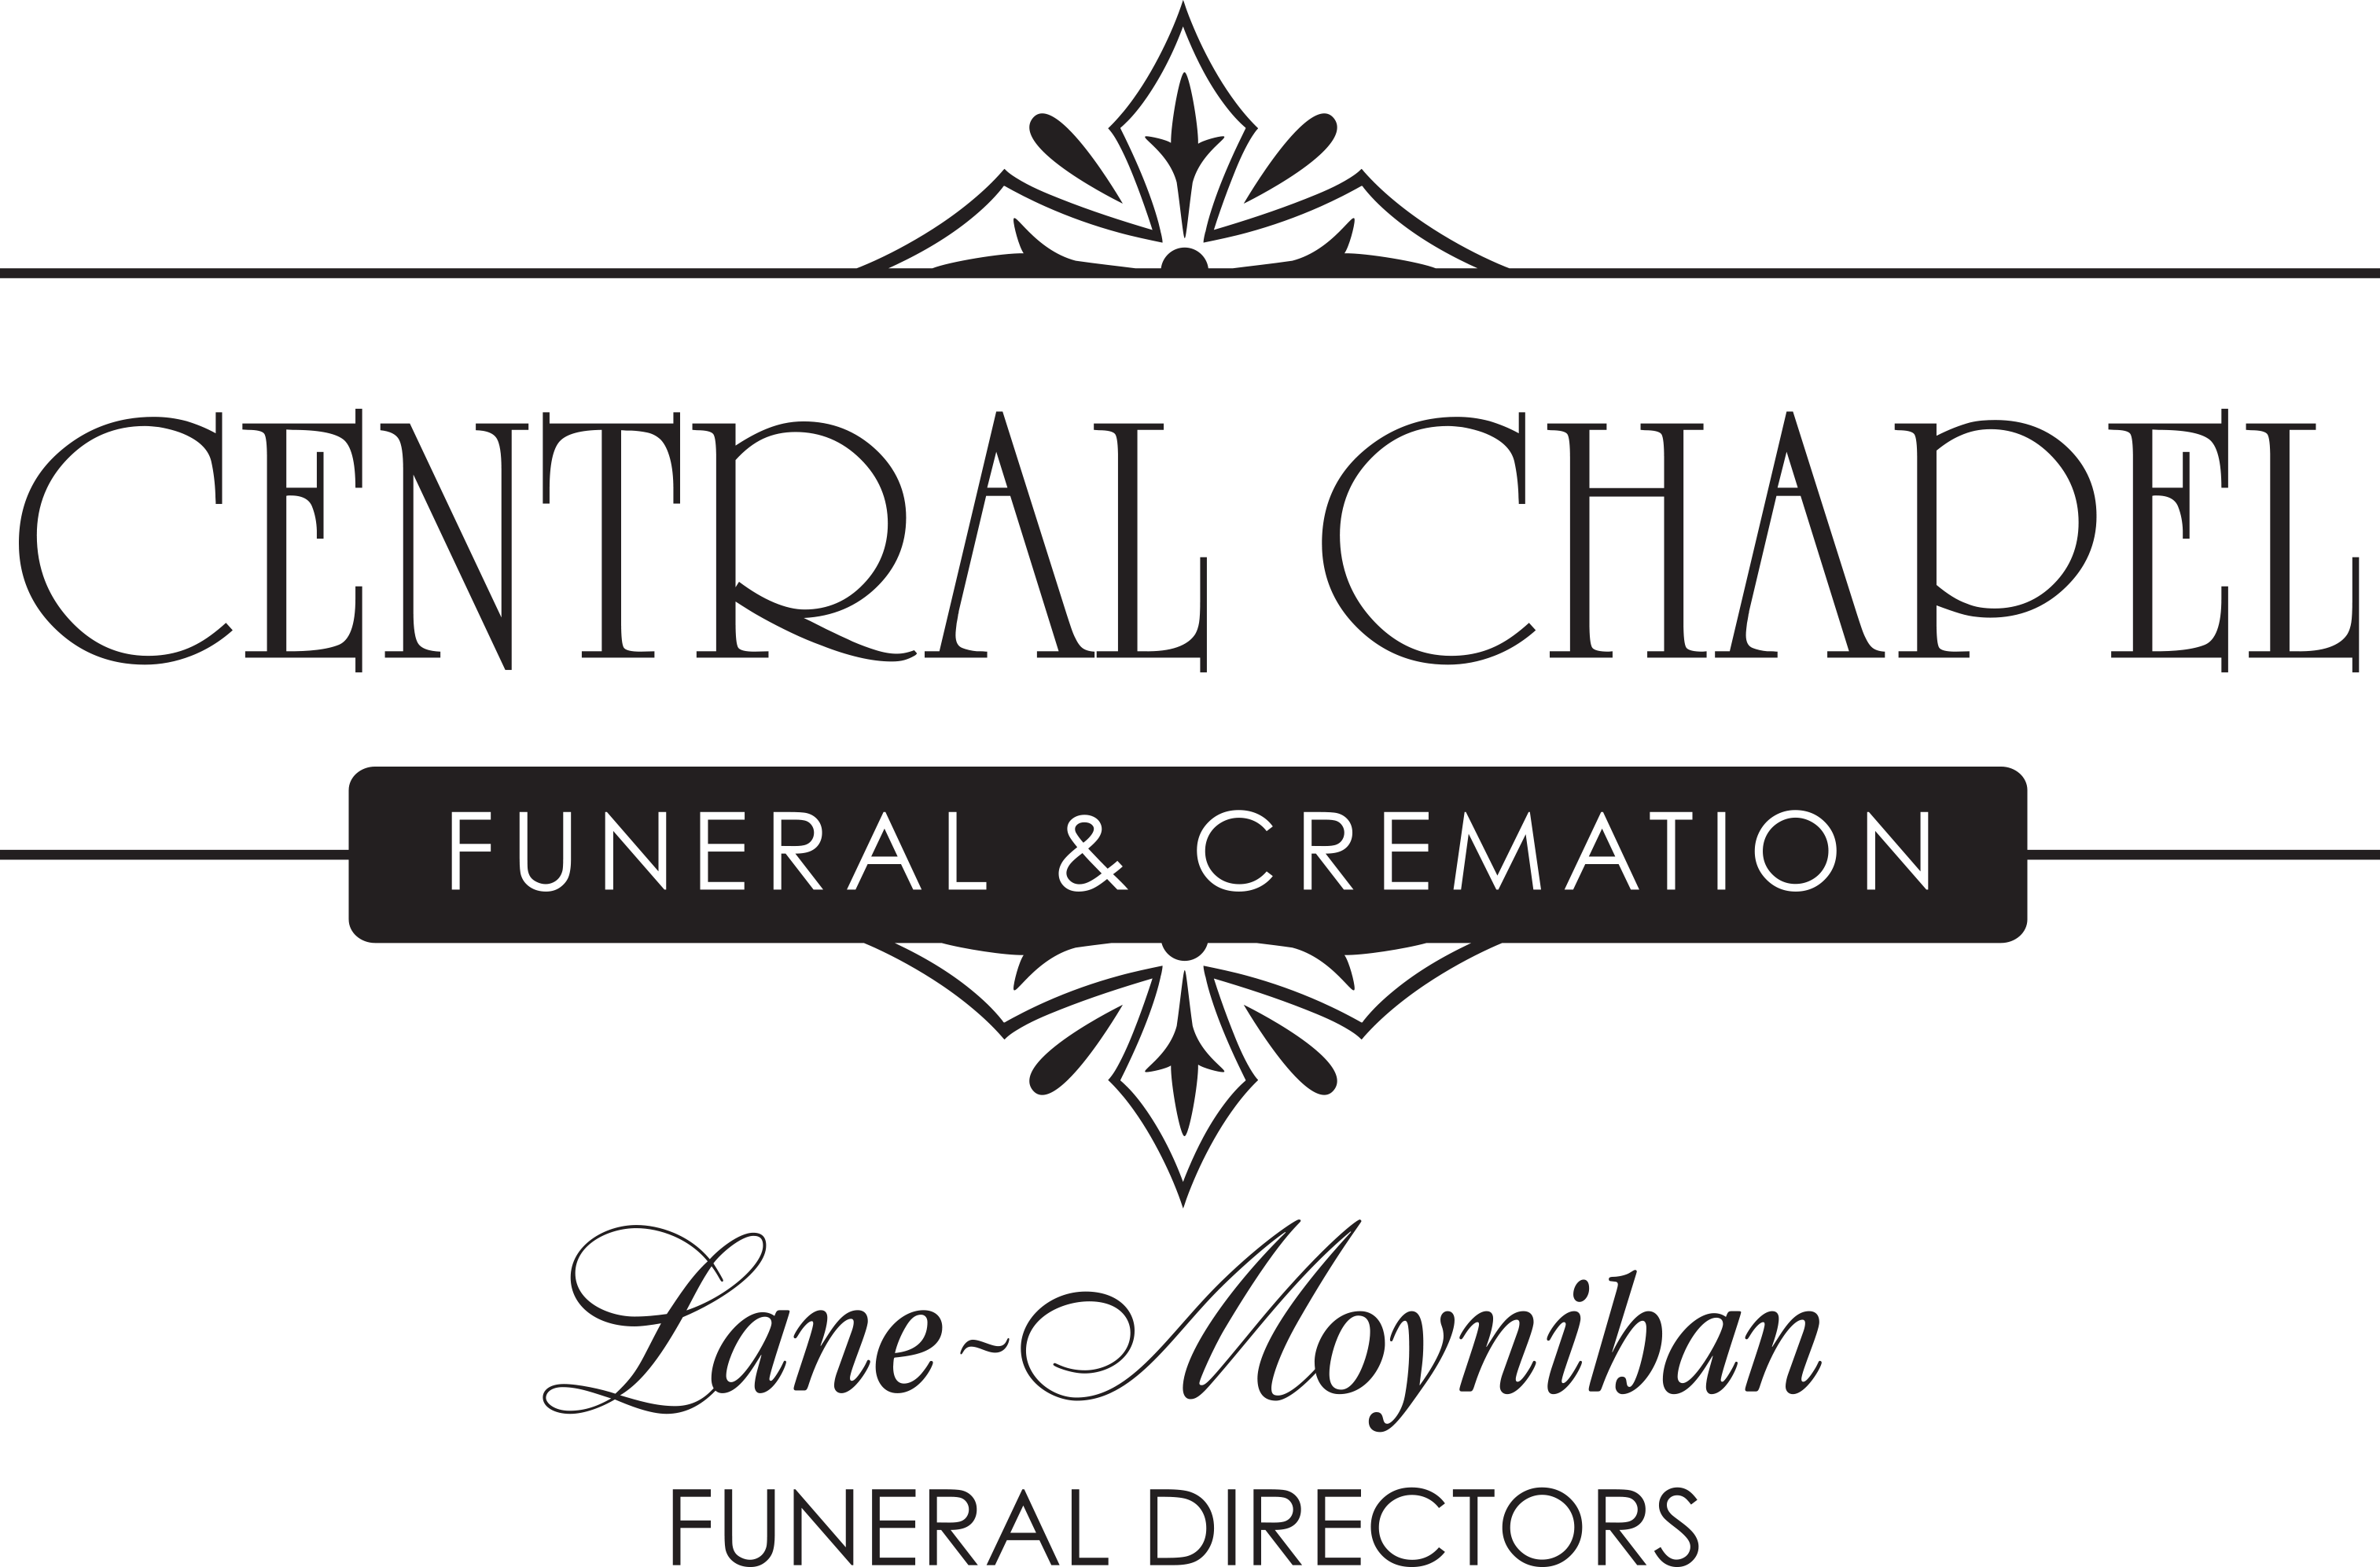 Central Chapel Funeral & Cremation